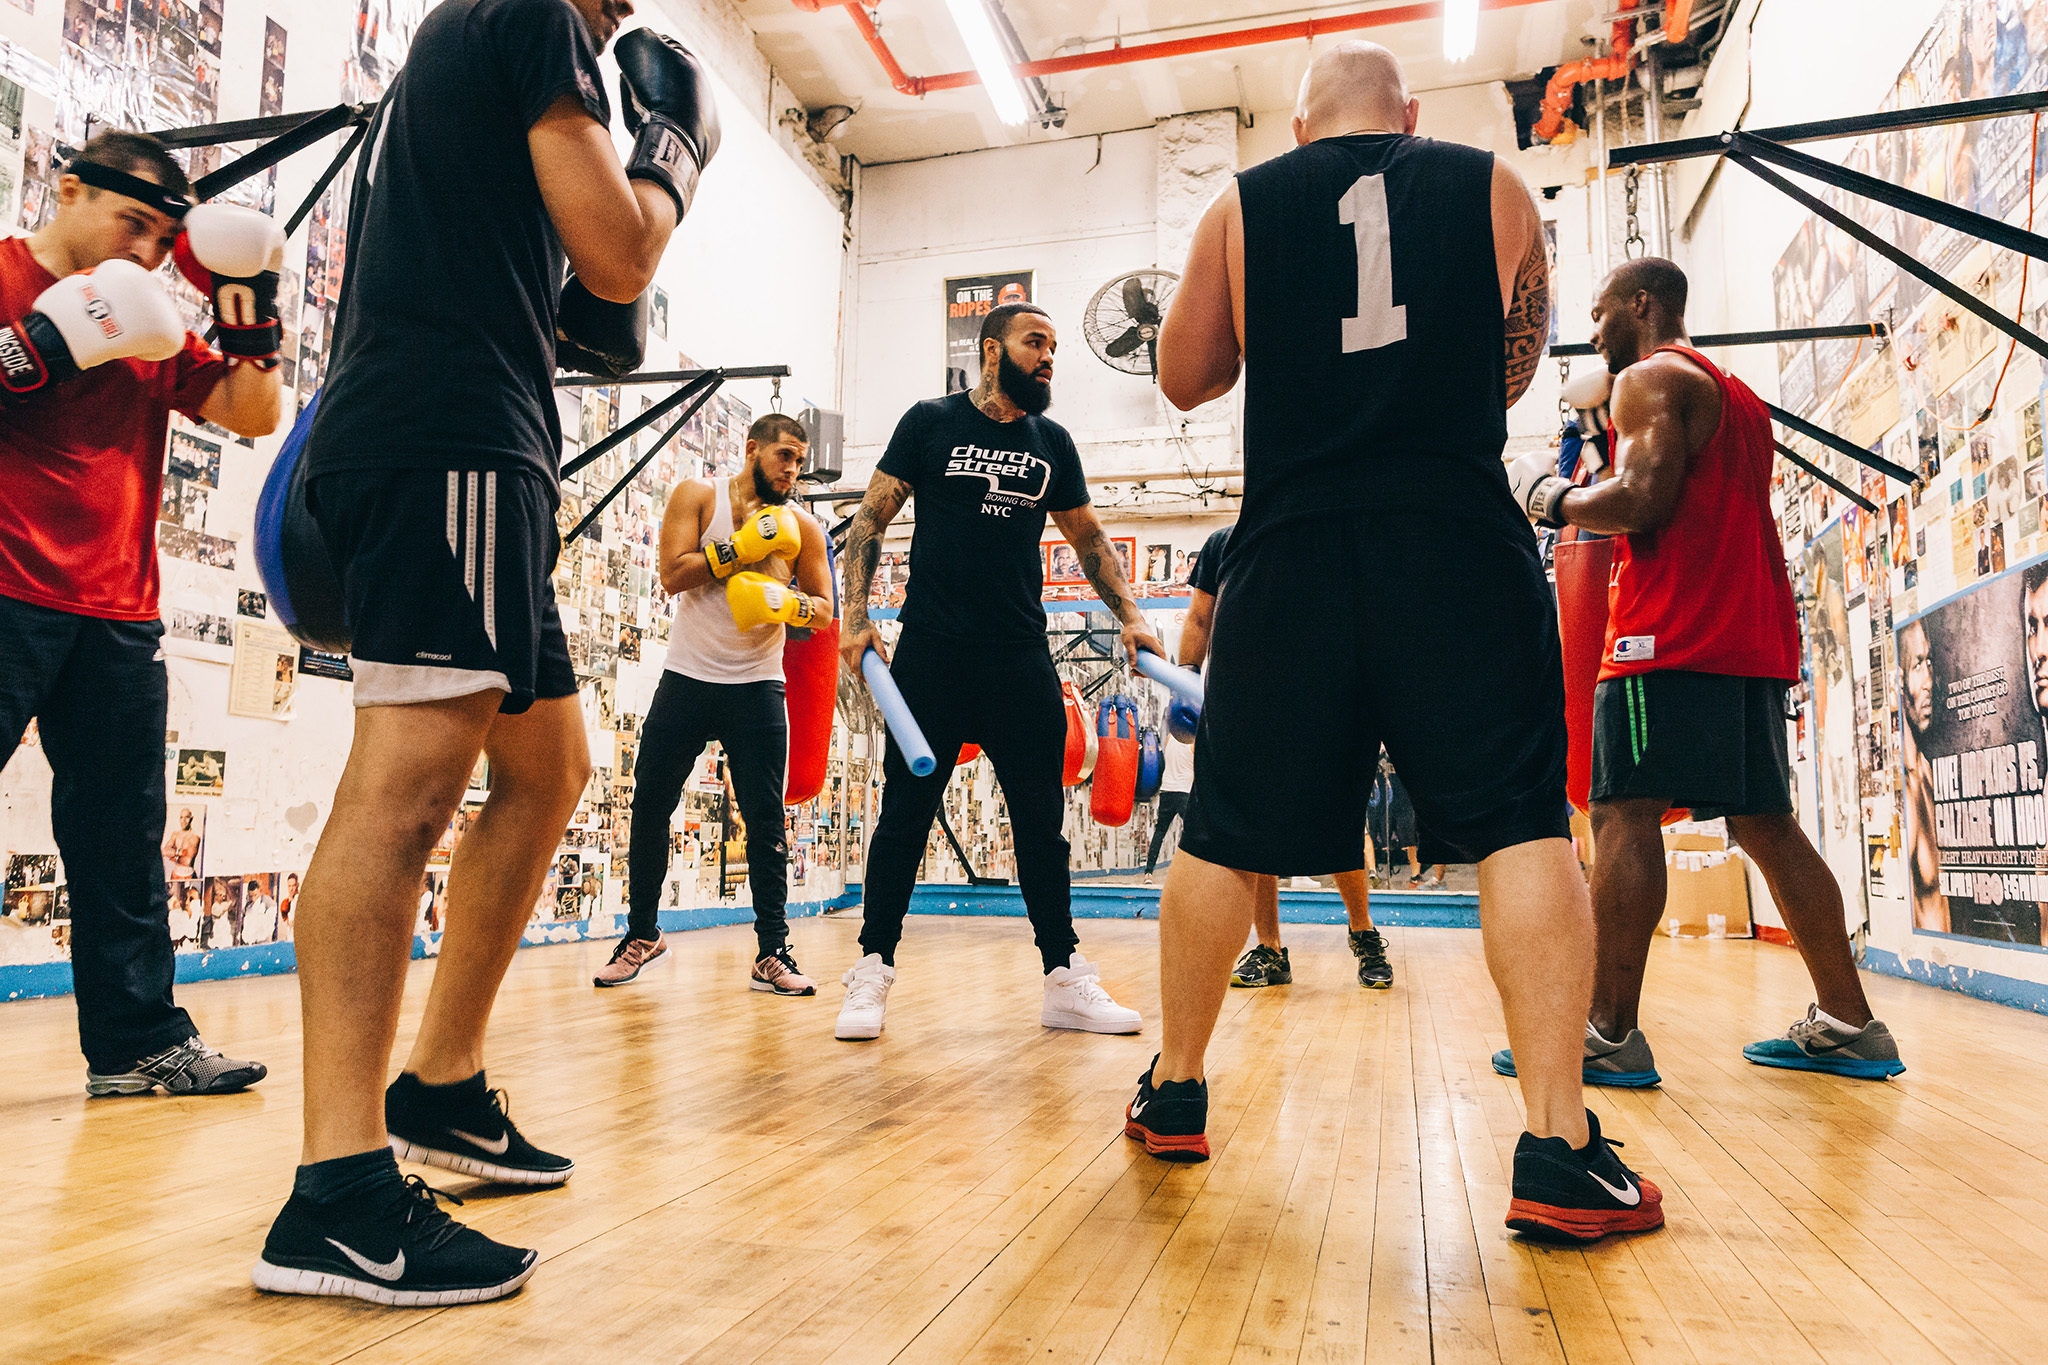 All Levels Boxing At Church Street